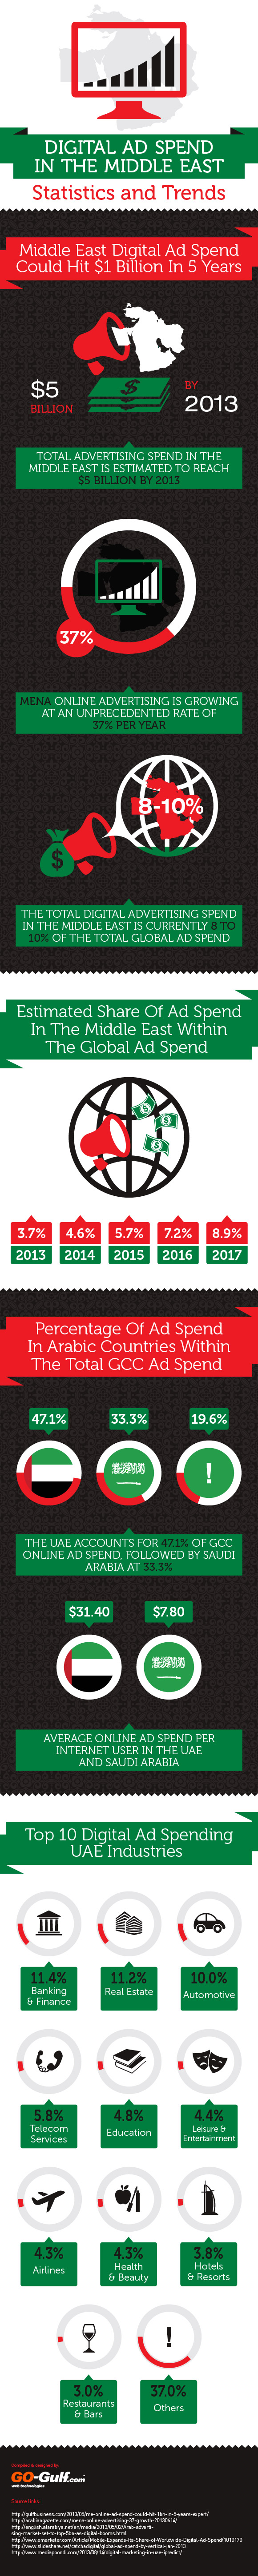 Digital AD Spend In The Middle East Statistics And Trends